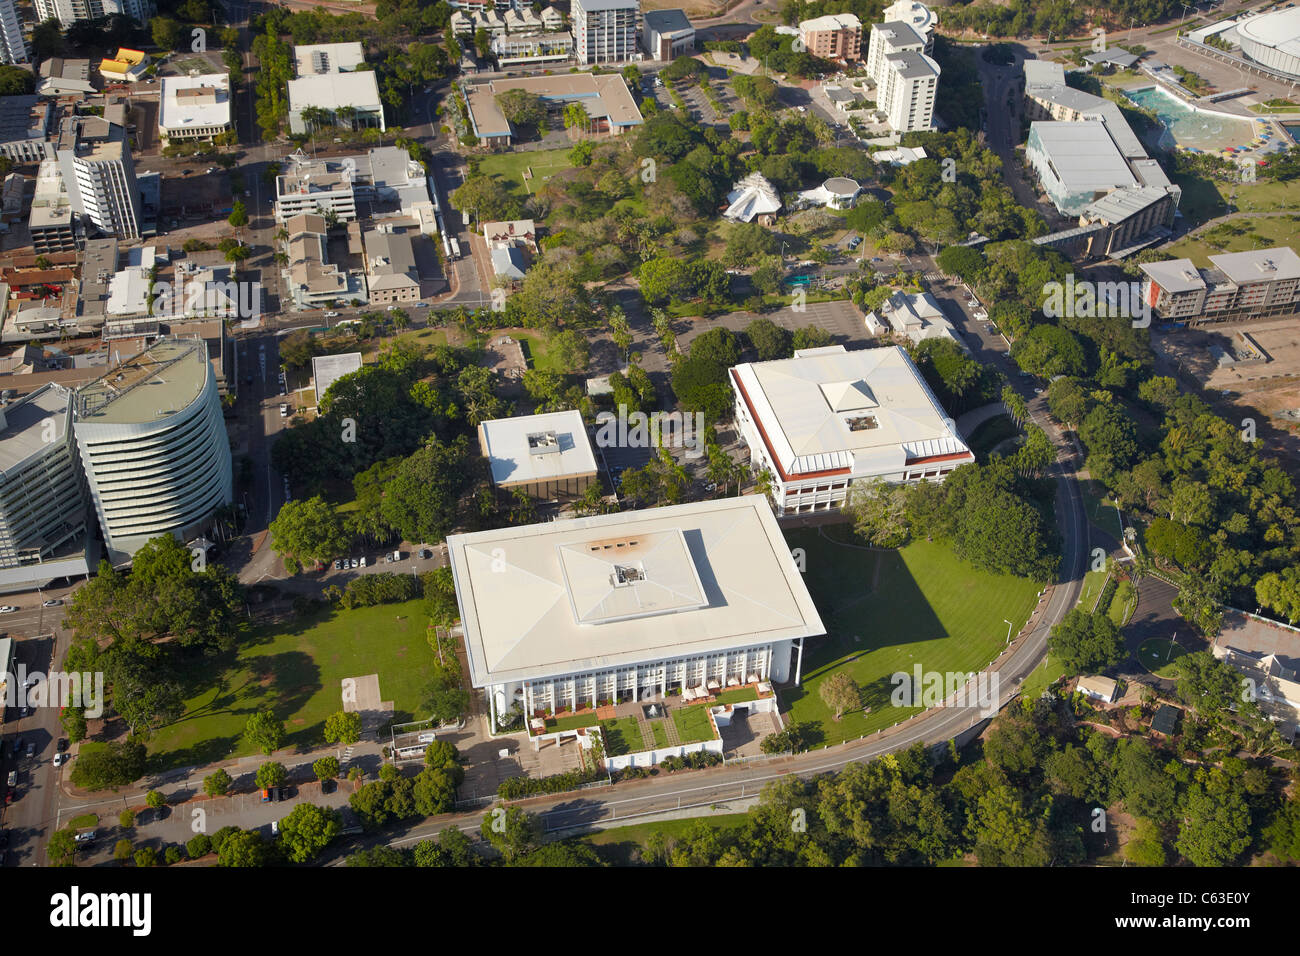 Parliament House, Supreme Court of the Northern Territory, and Civic Square, Darwin, Northern Territory, Australia - Stock Image